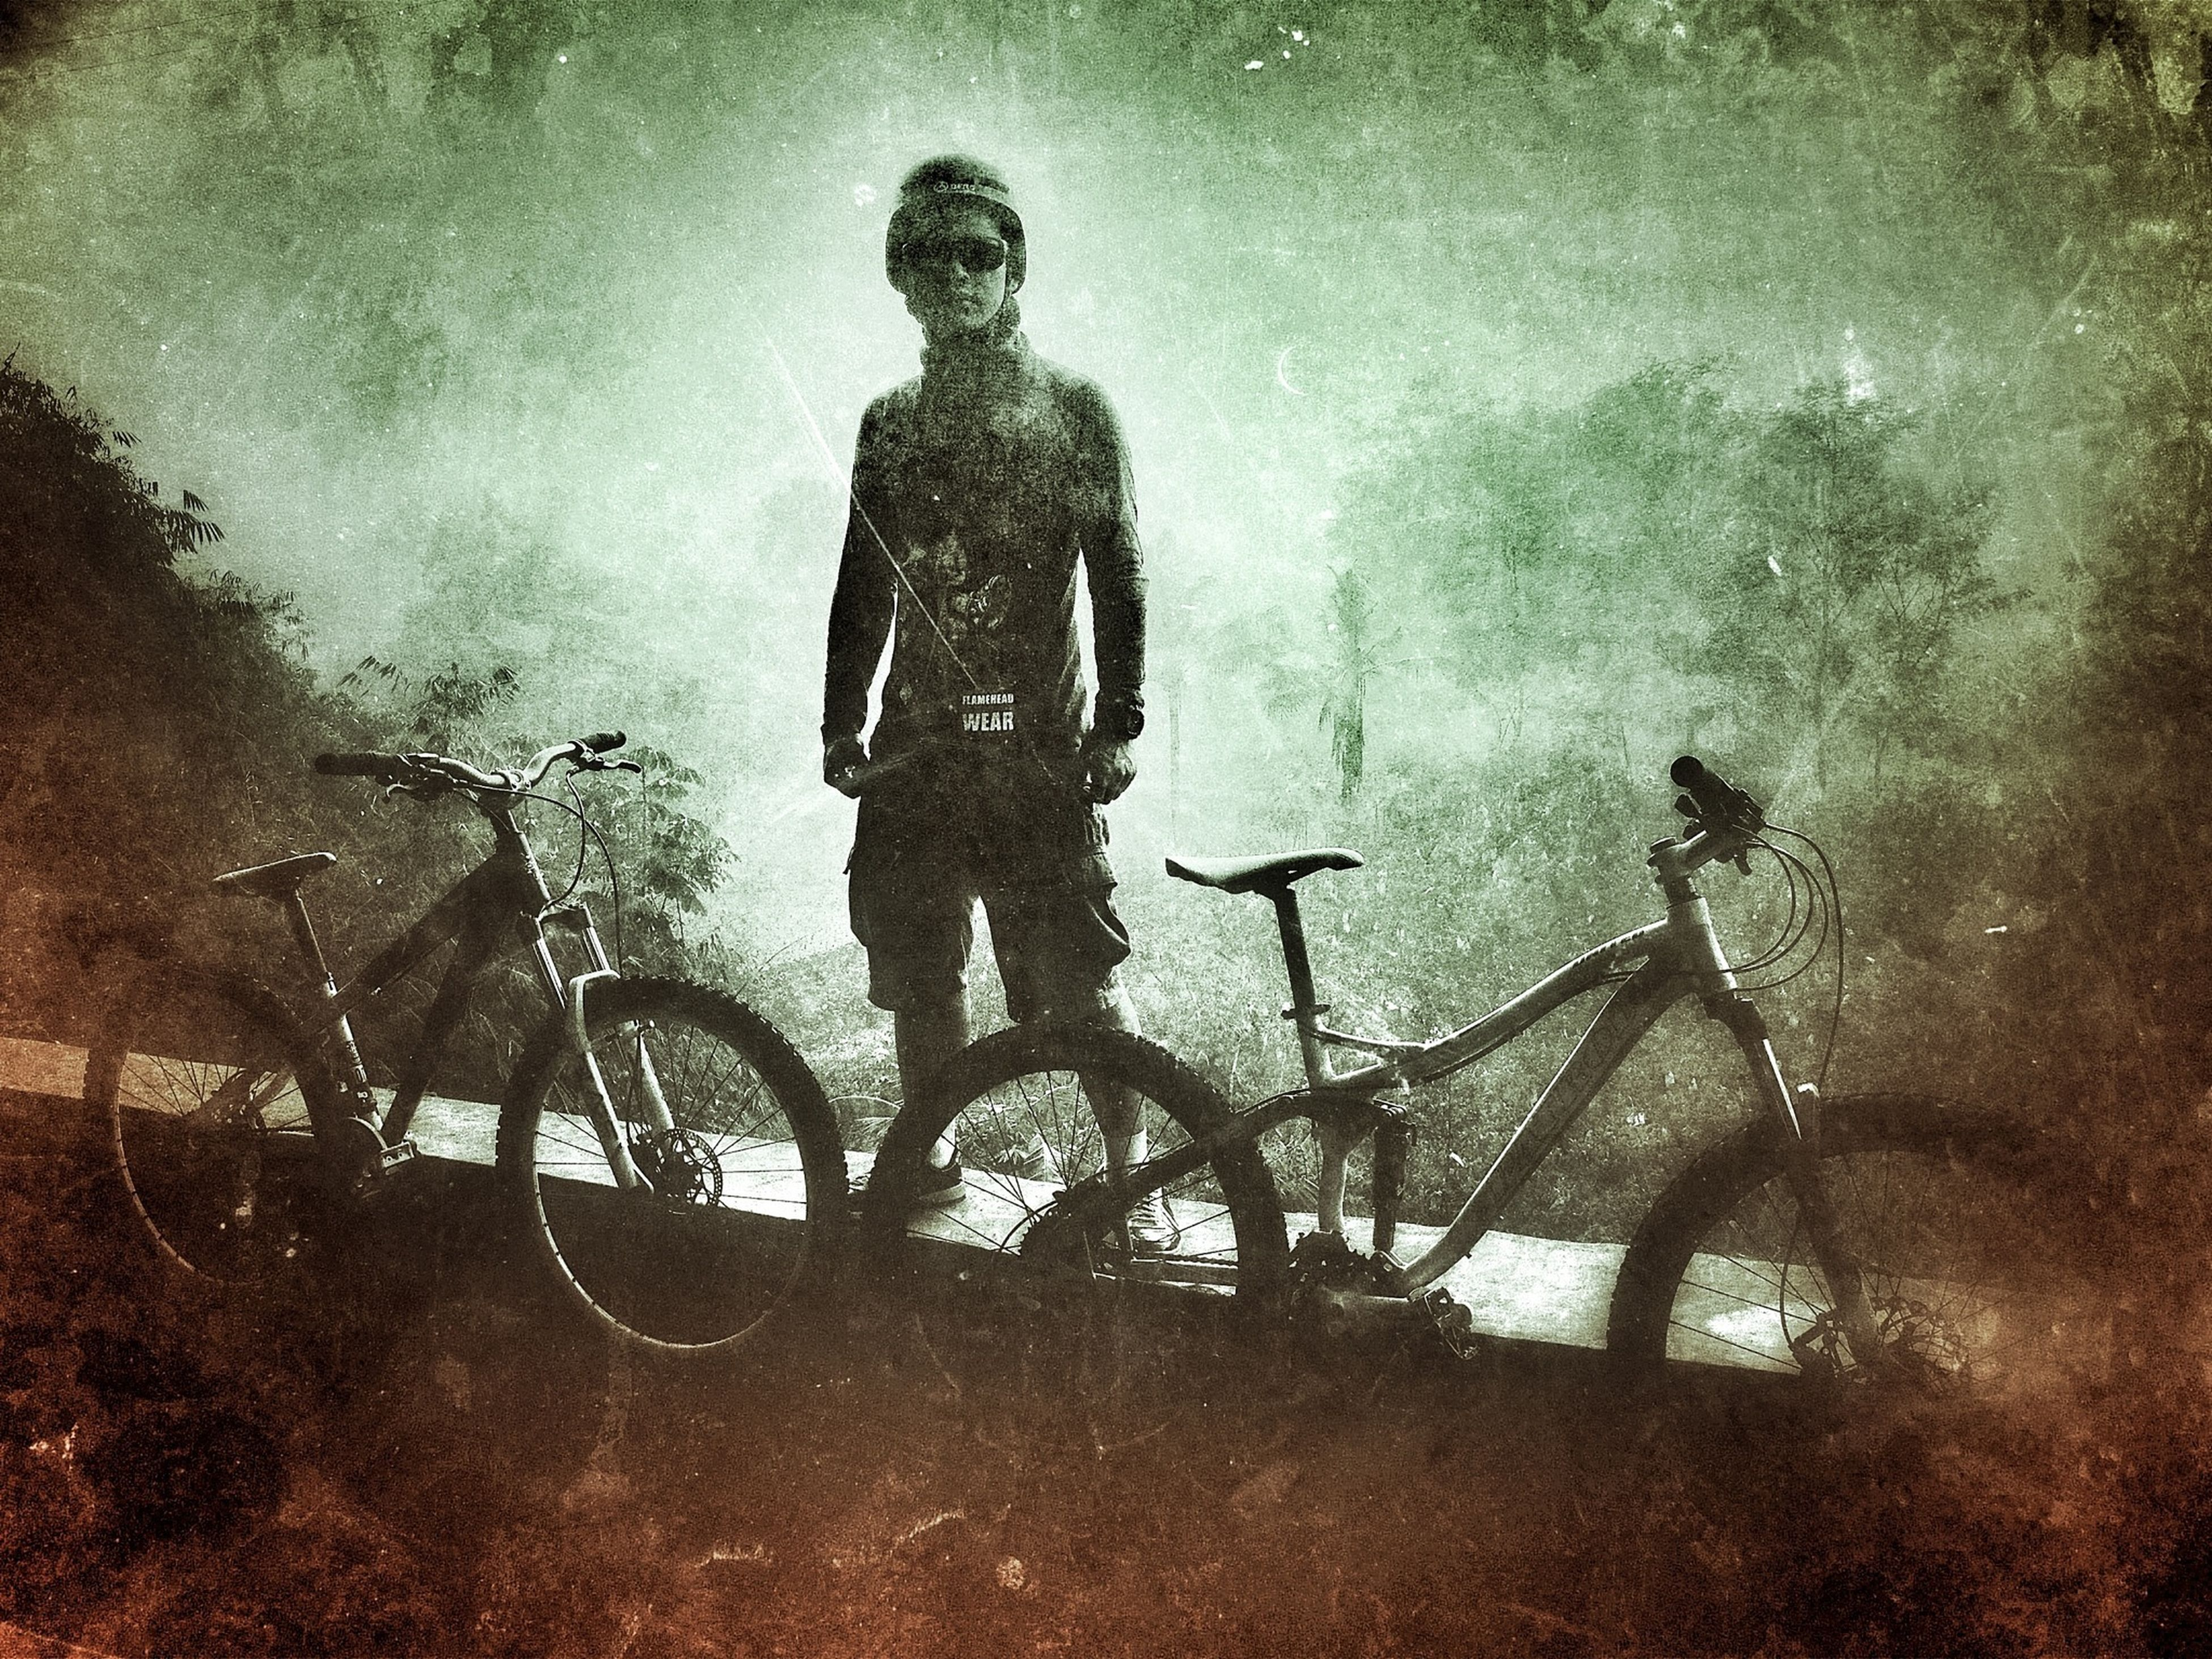 bicycle, transportation, mode of transport, auto post production filter, land vehicle, sky, men, outdoors, lifestyles, night, low angle view, leisure activity, nature, puddle, full length, motion, weather